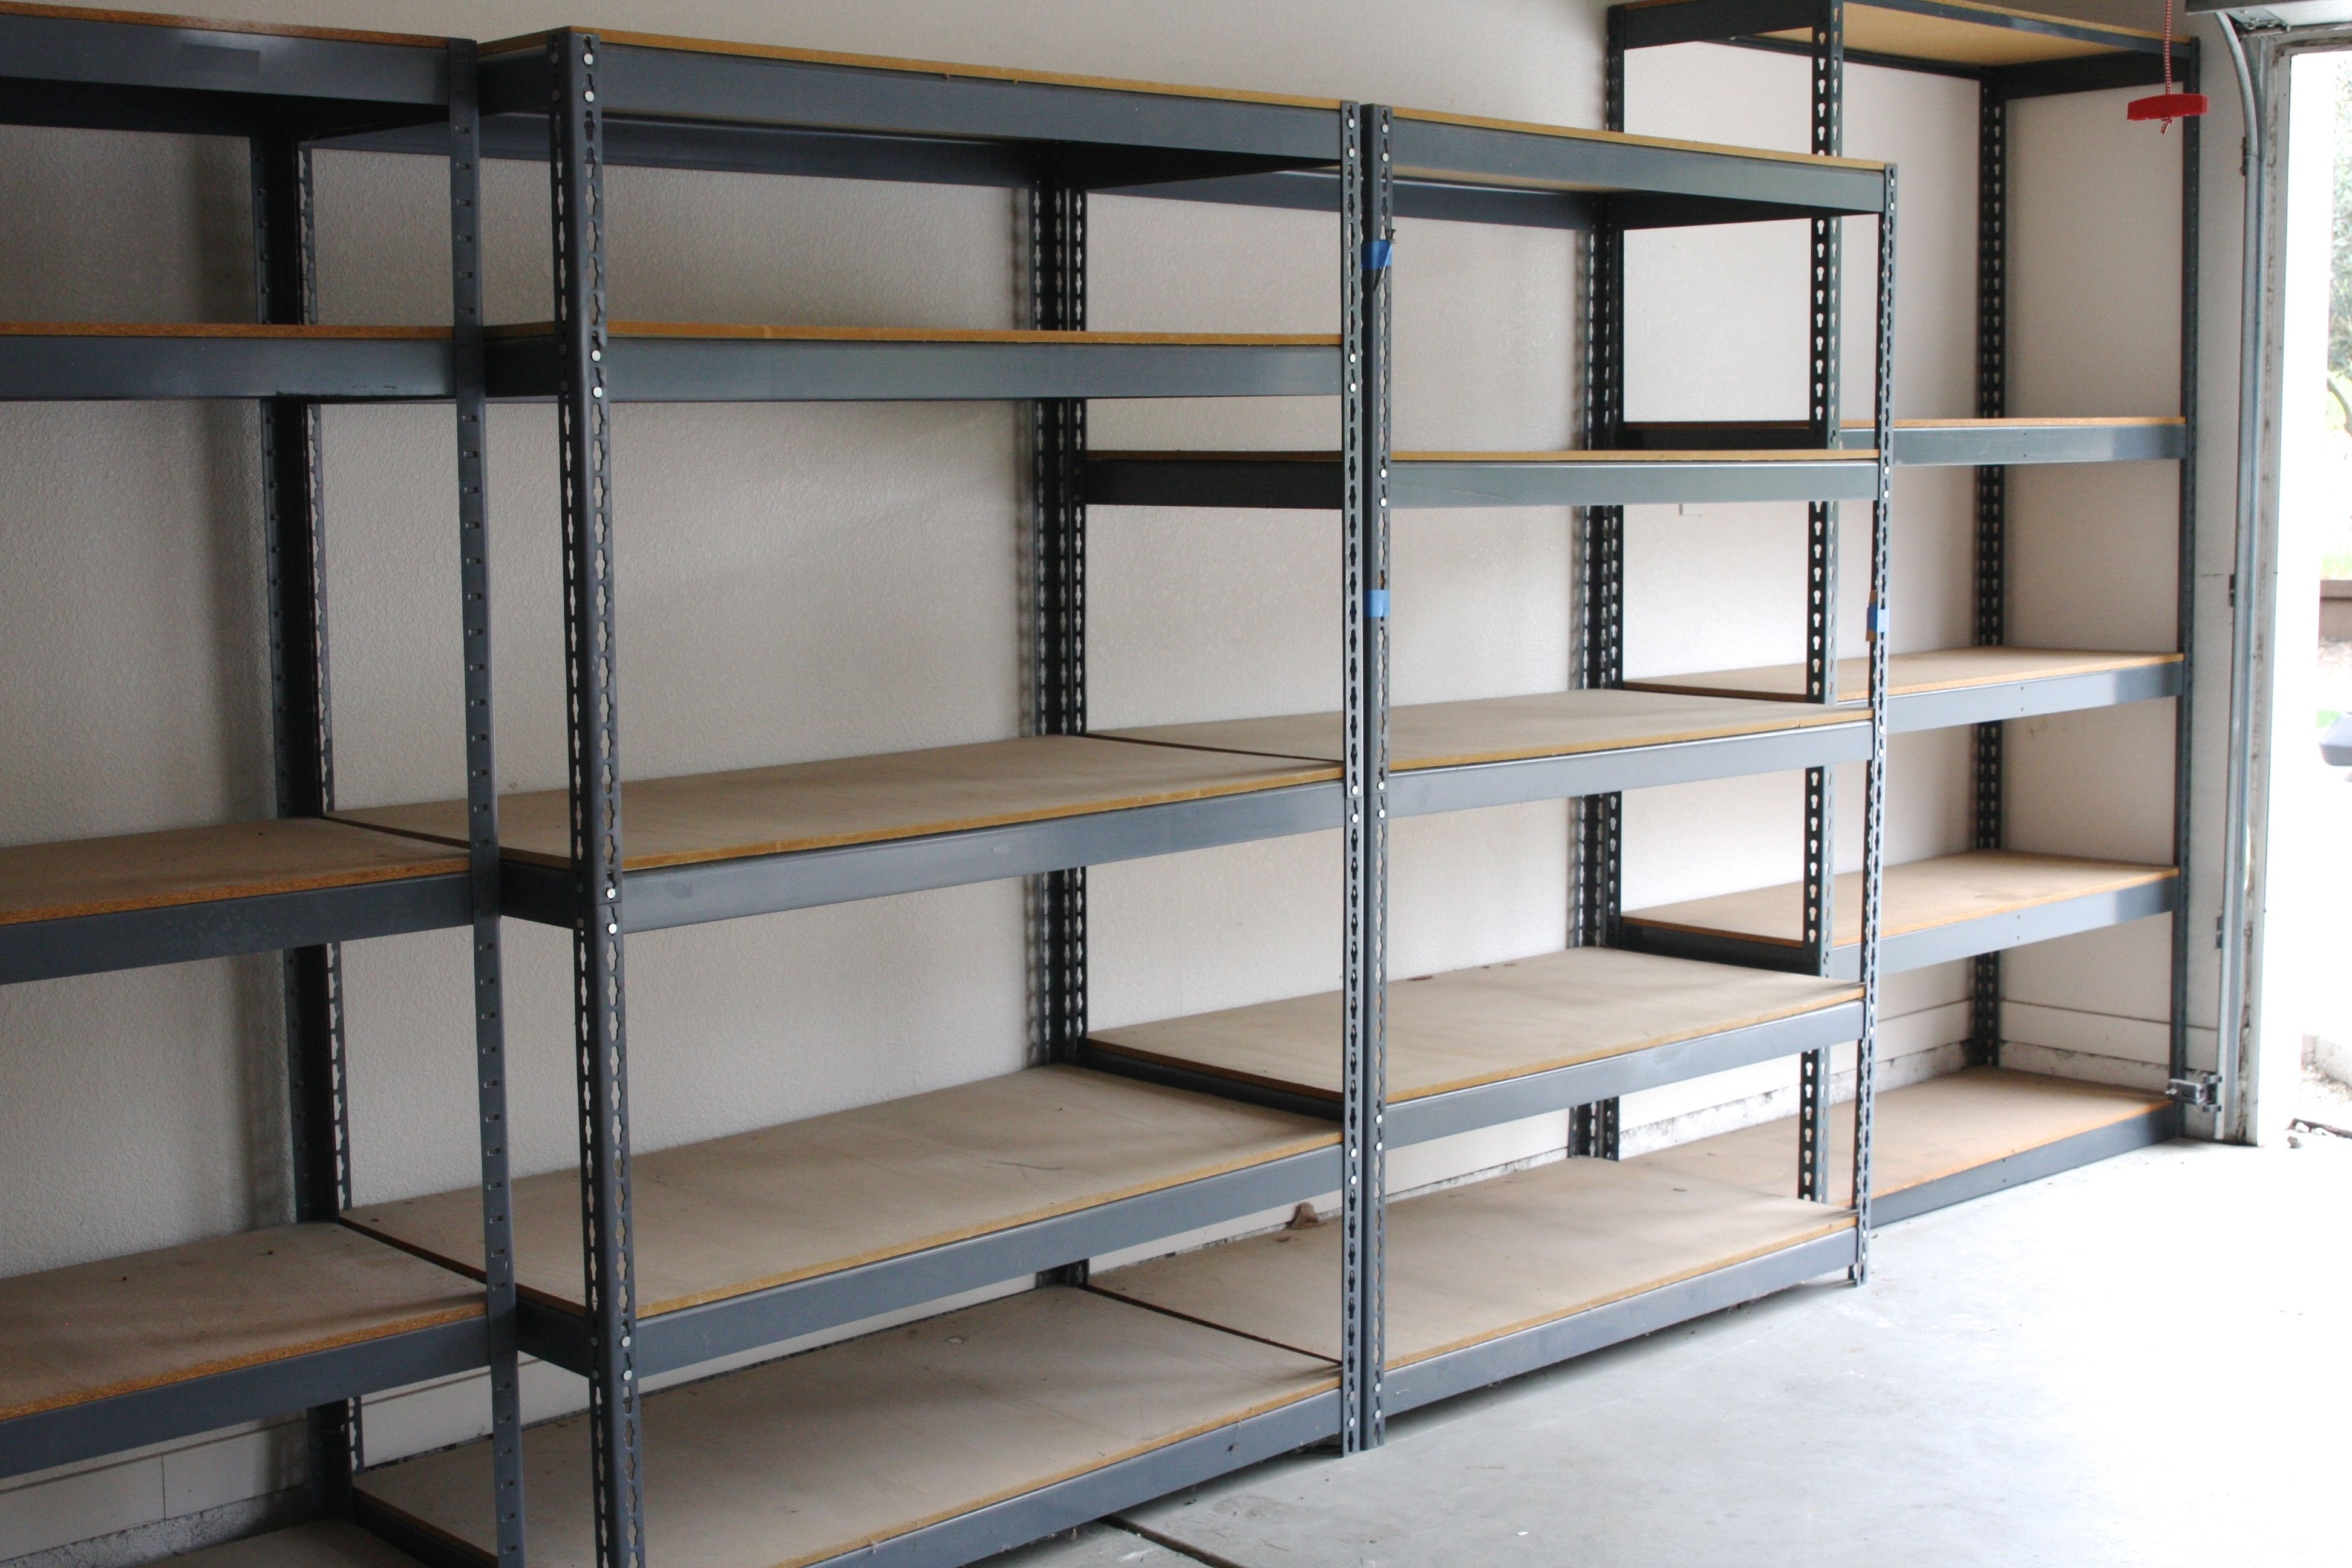 Pin By Marilyn Mount On Garage Garage Shelving Metal Garage Shelves Garage Storage Shelves